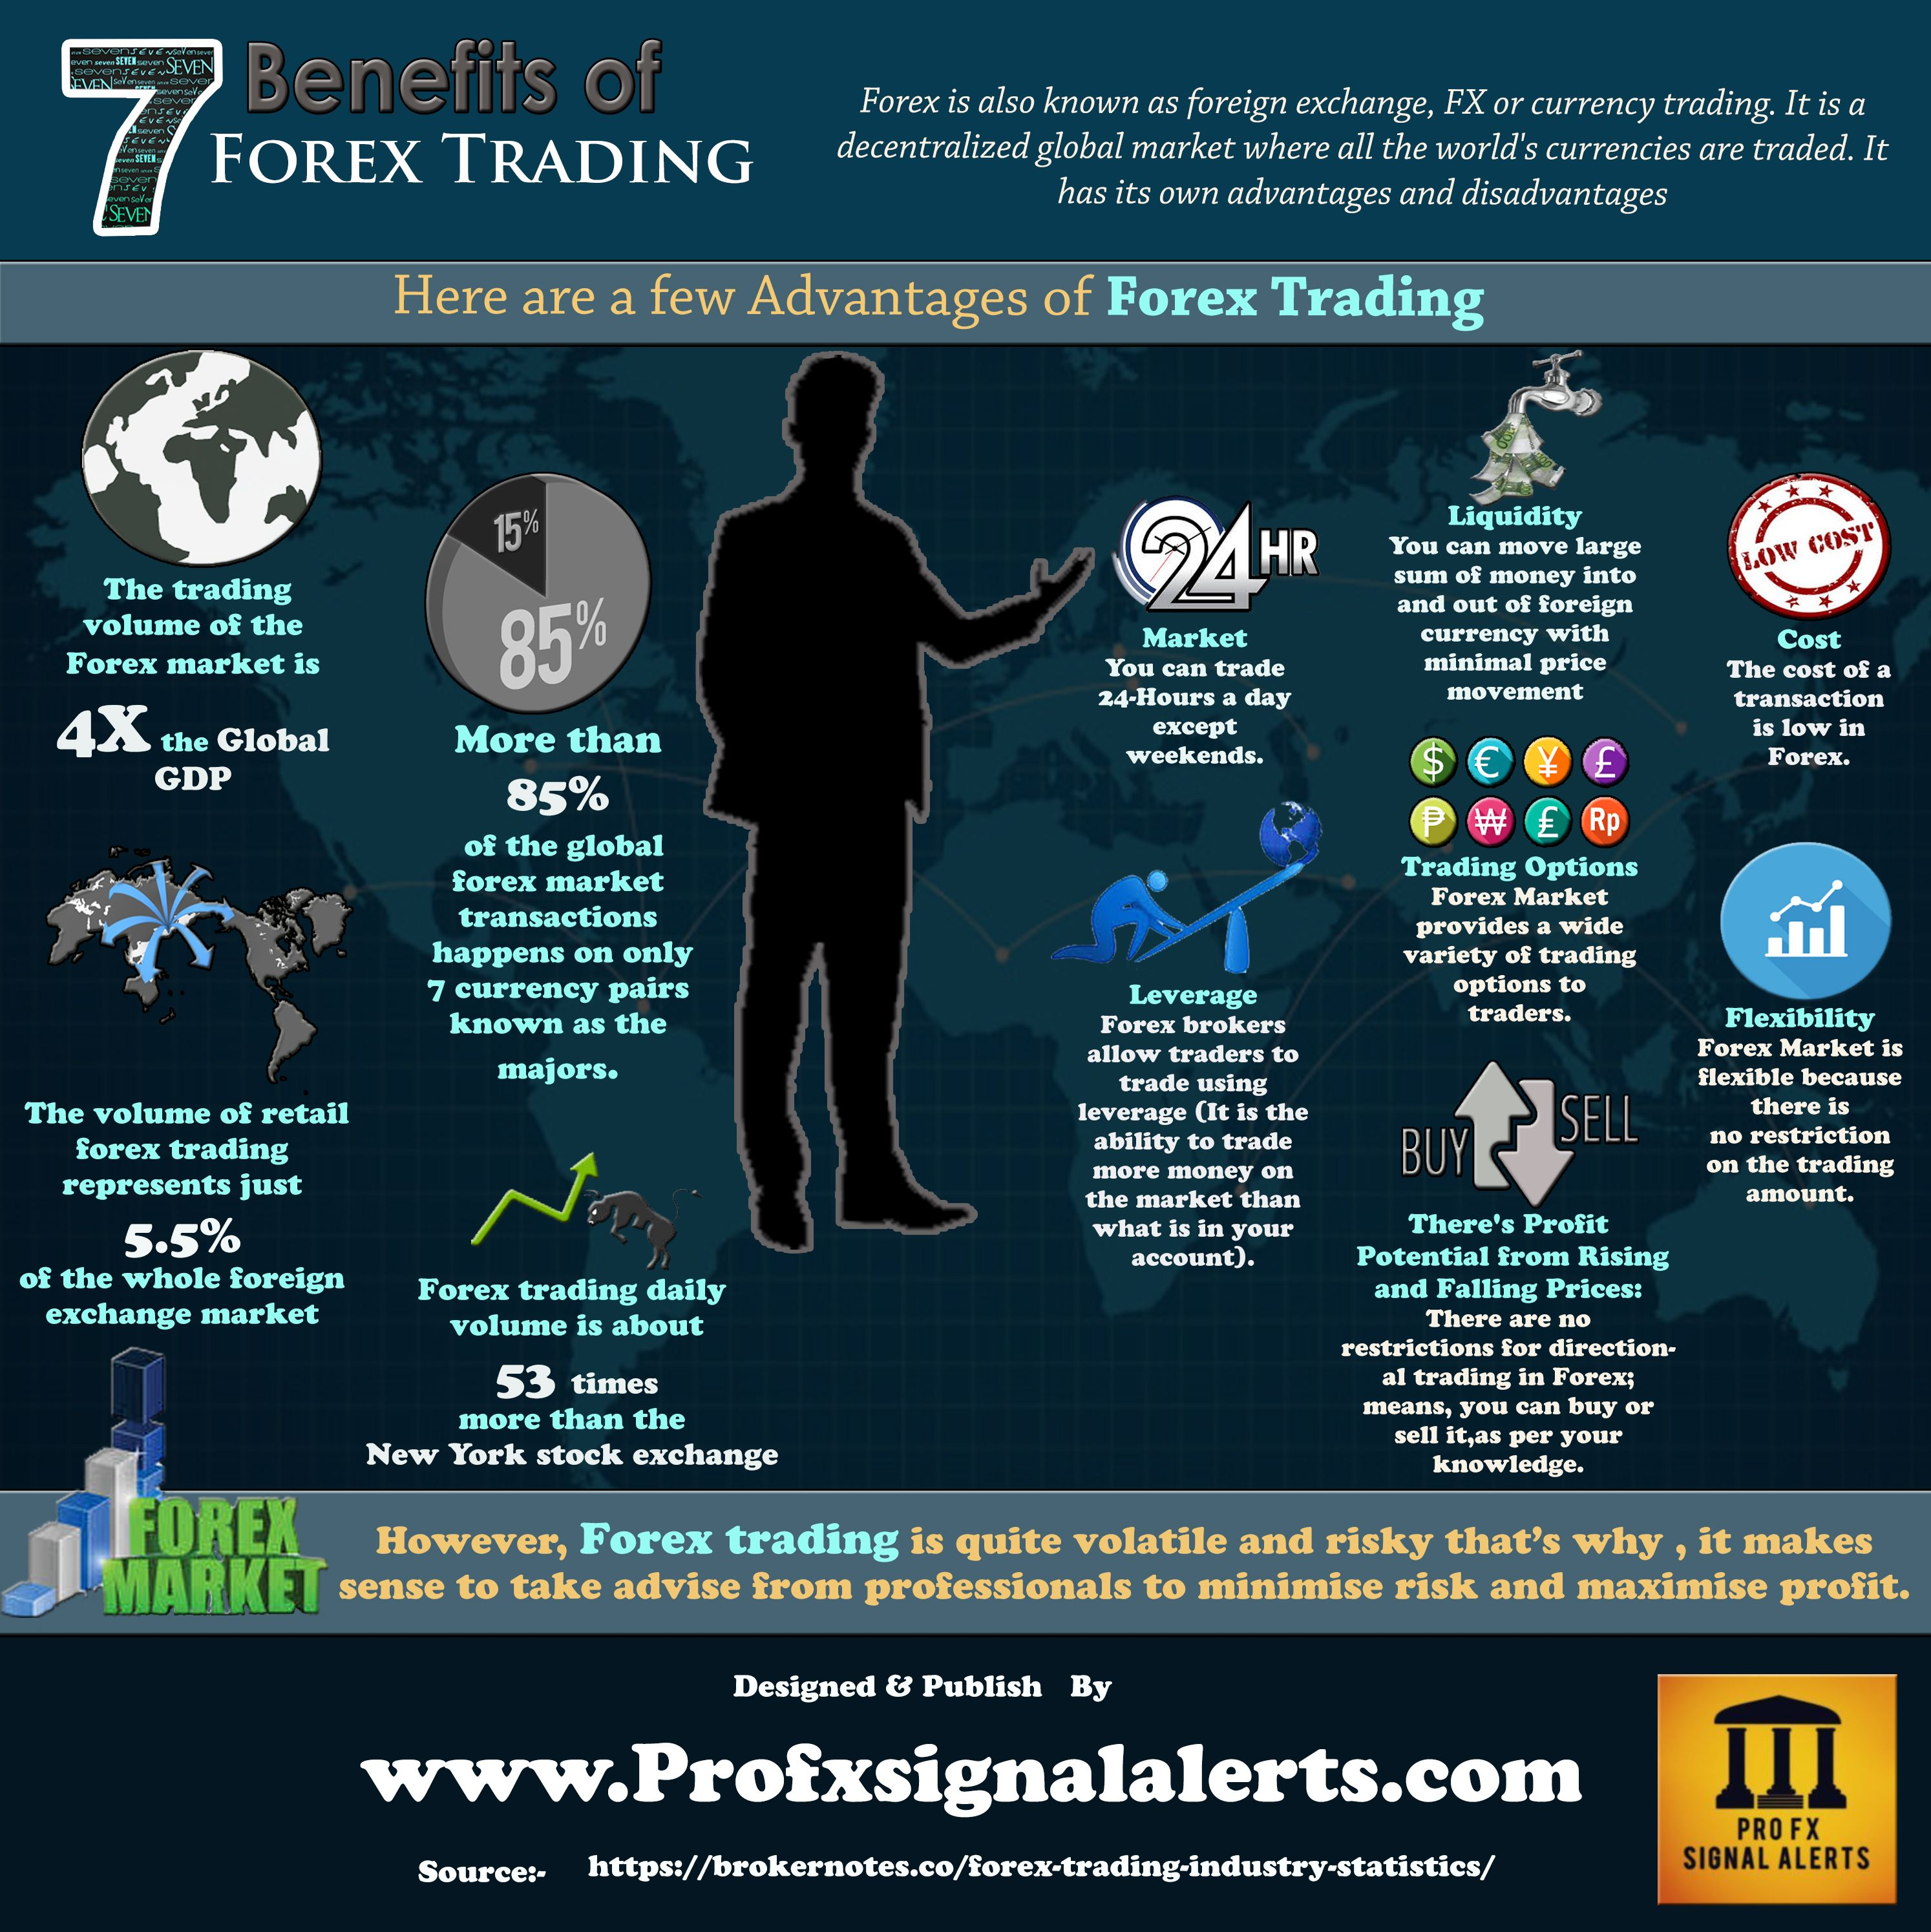 7 Benefits Of Forex Trading Also Known As Foreign Exchange Fx Or Currency Is A Decentralized Global Market Where All The World S Currencies